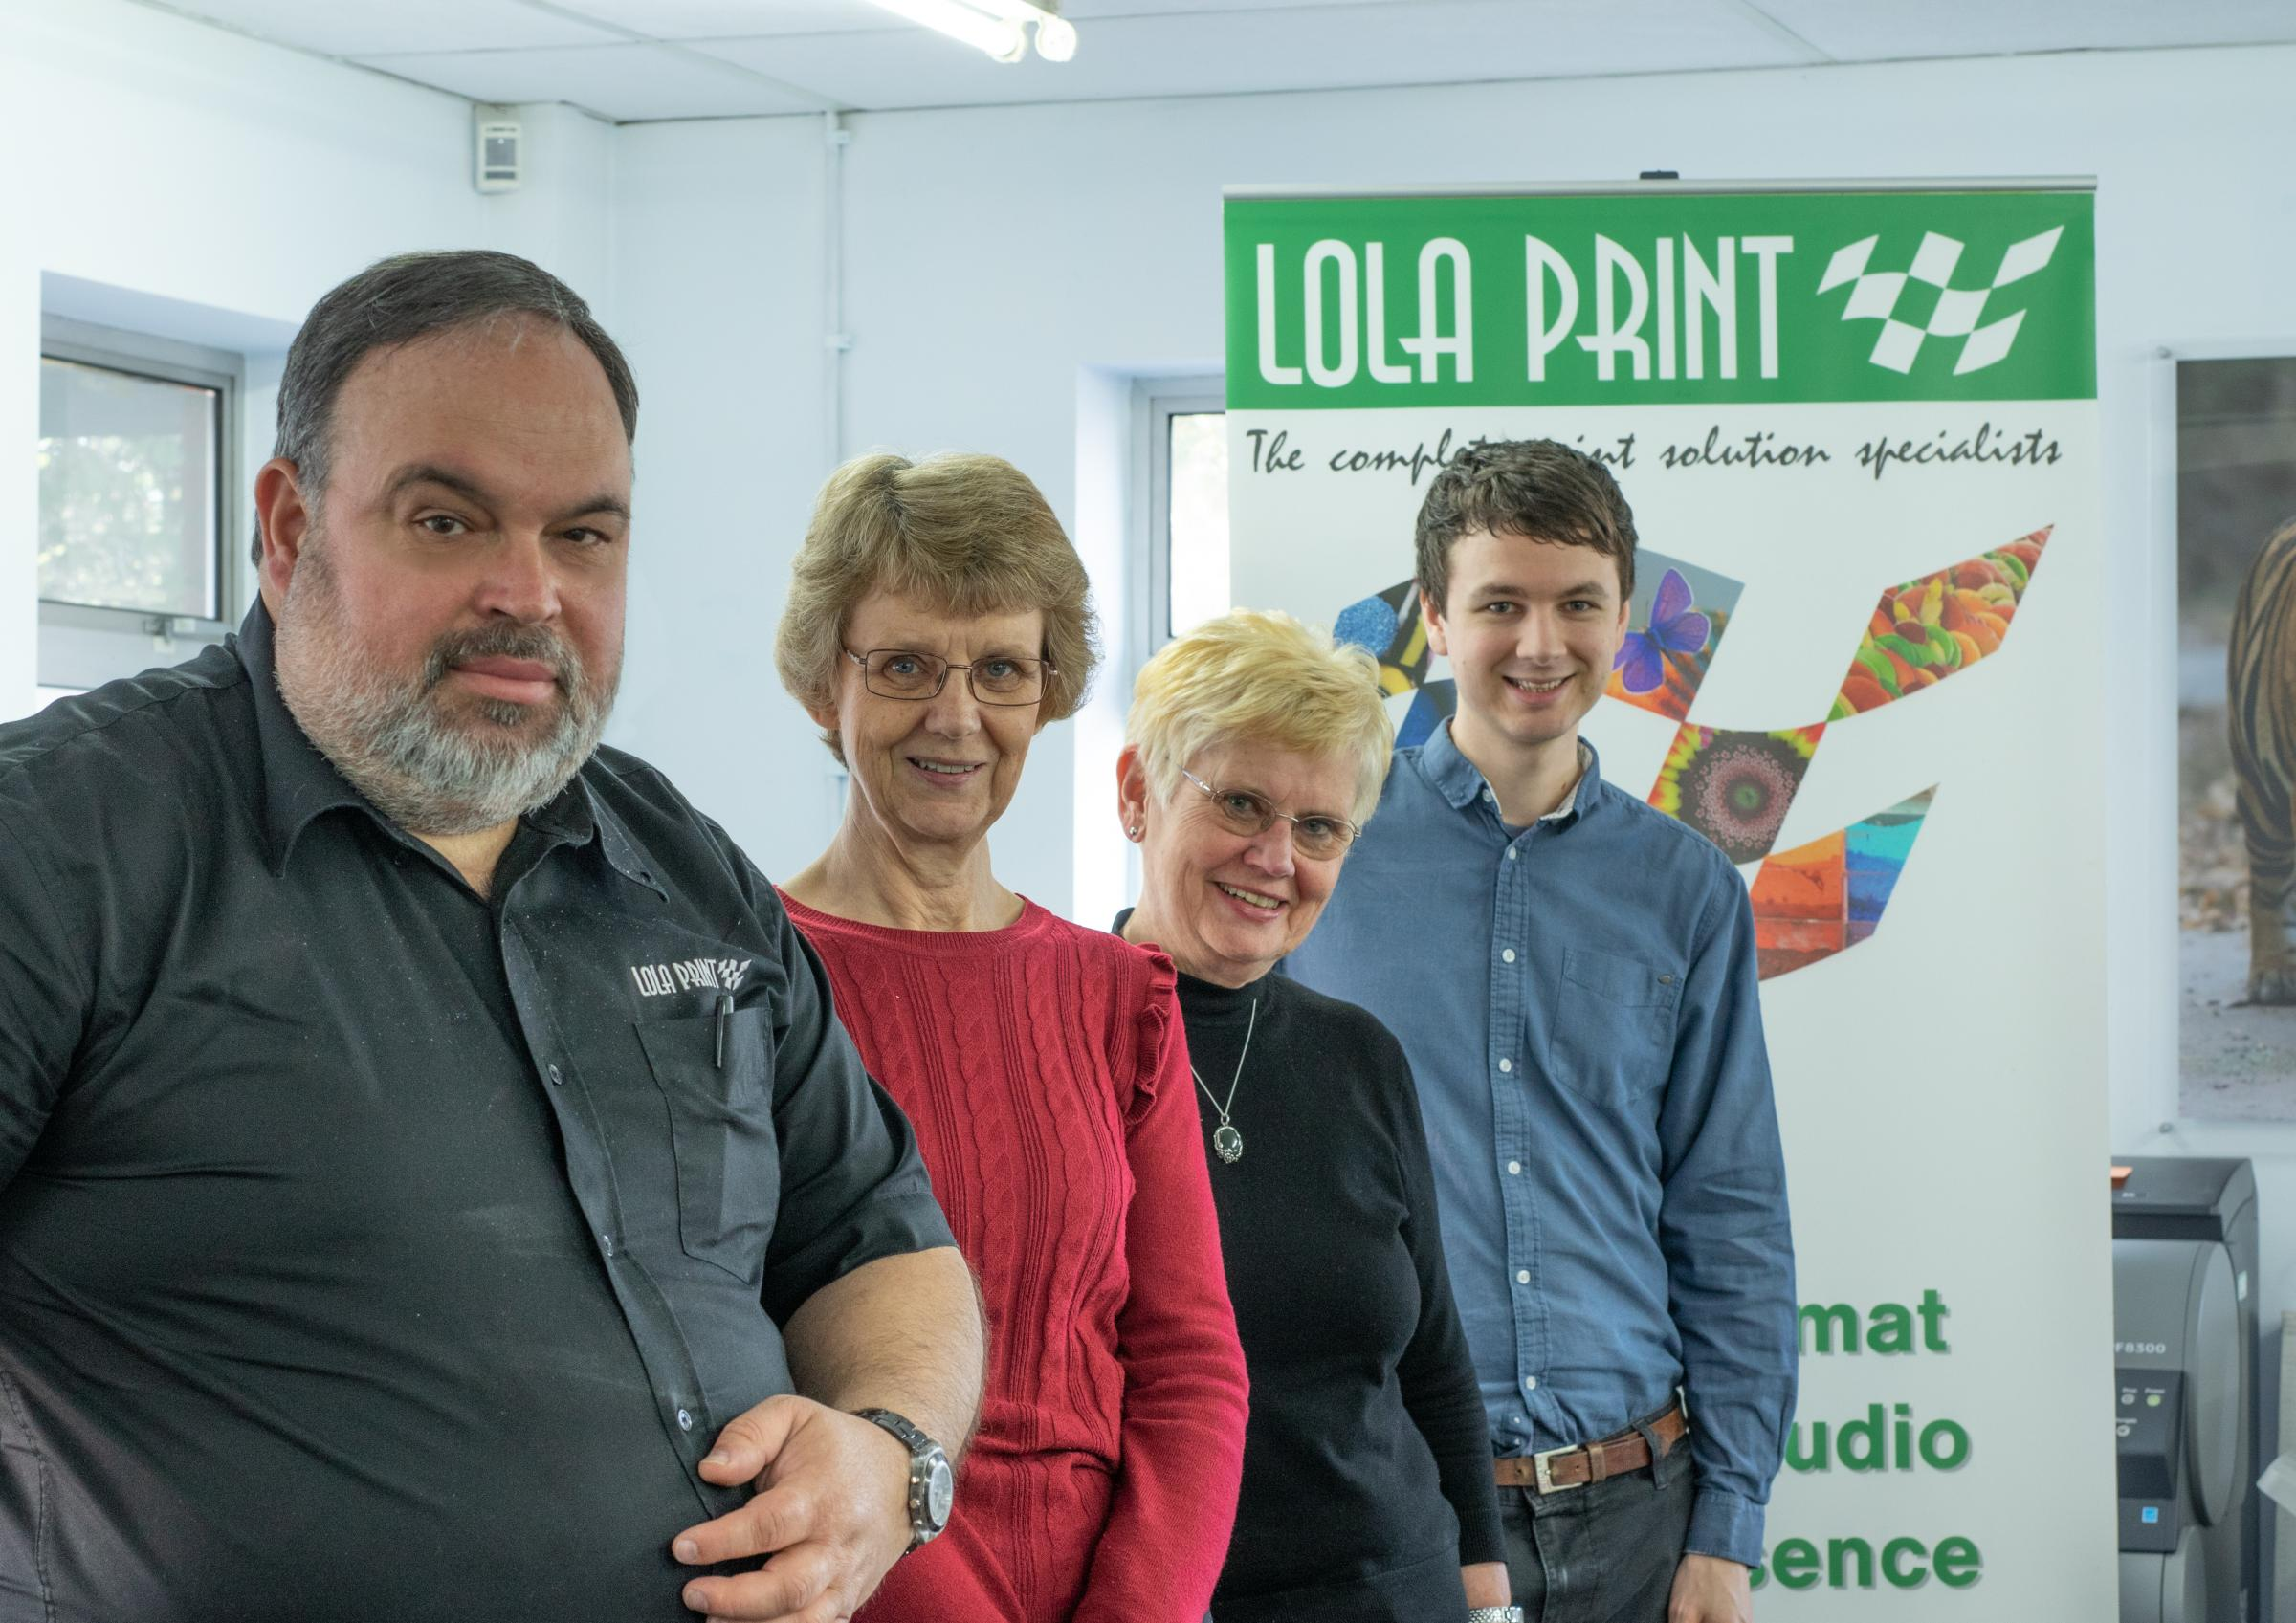 The team at Lola Print, from left,Tony da Franca, design director; Sue Foster, office manager; Anna Croucher, managing director; and Stewart Syckelmore production